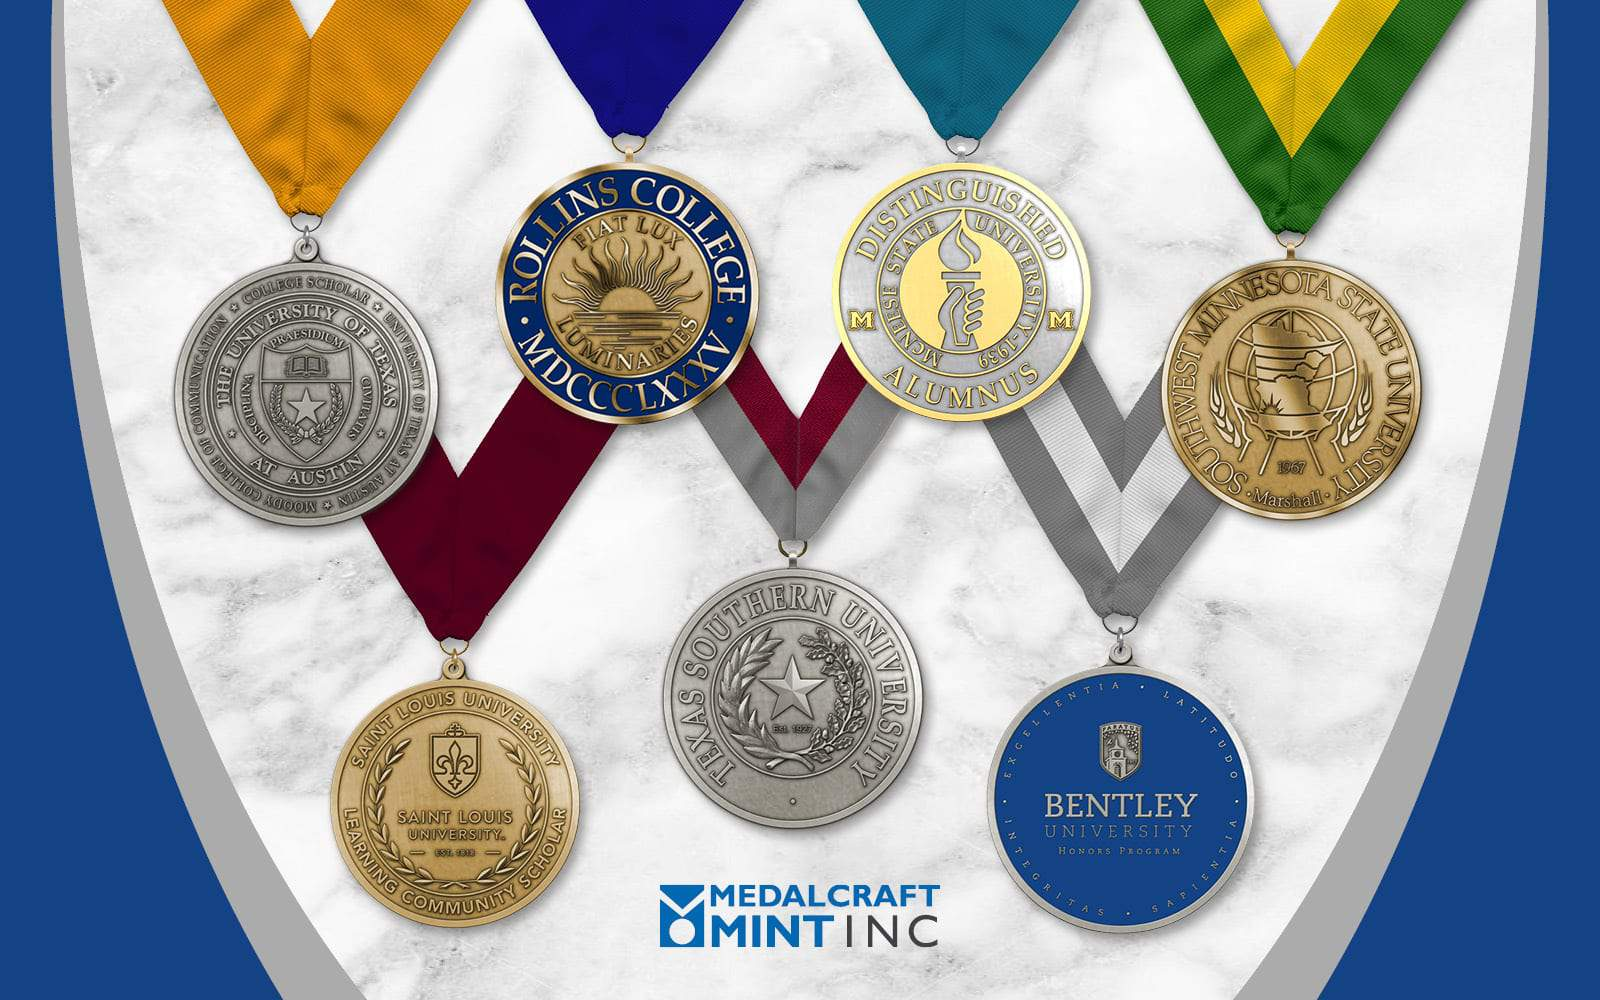 Medalcraft Mint Takes Graduation Awards to a Higher Level